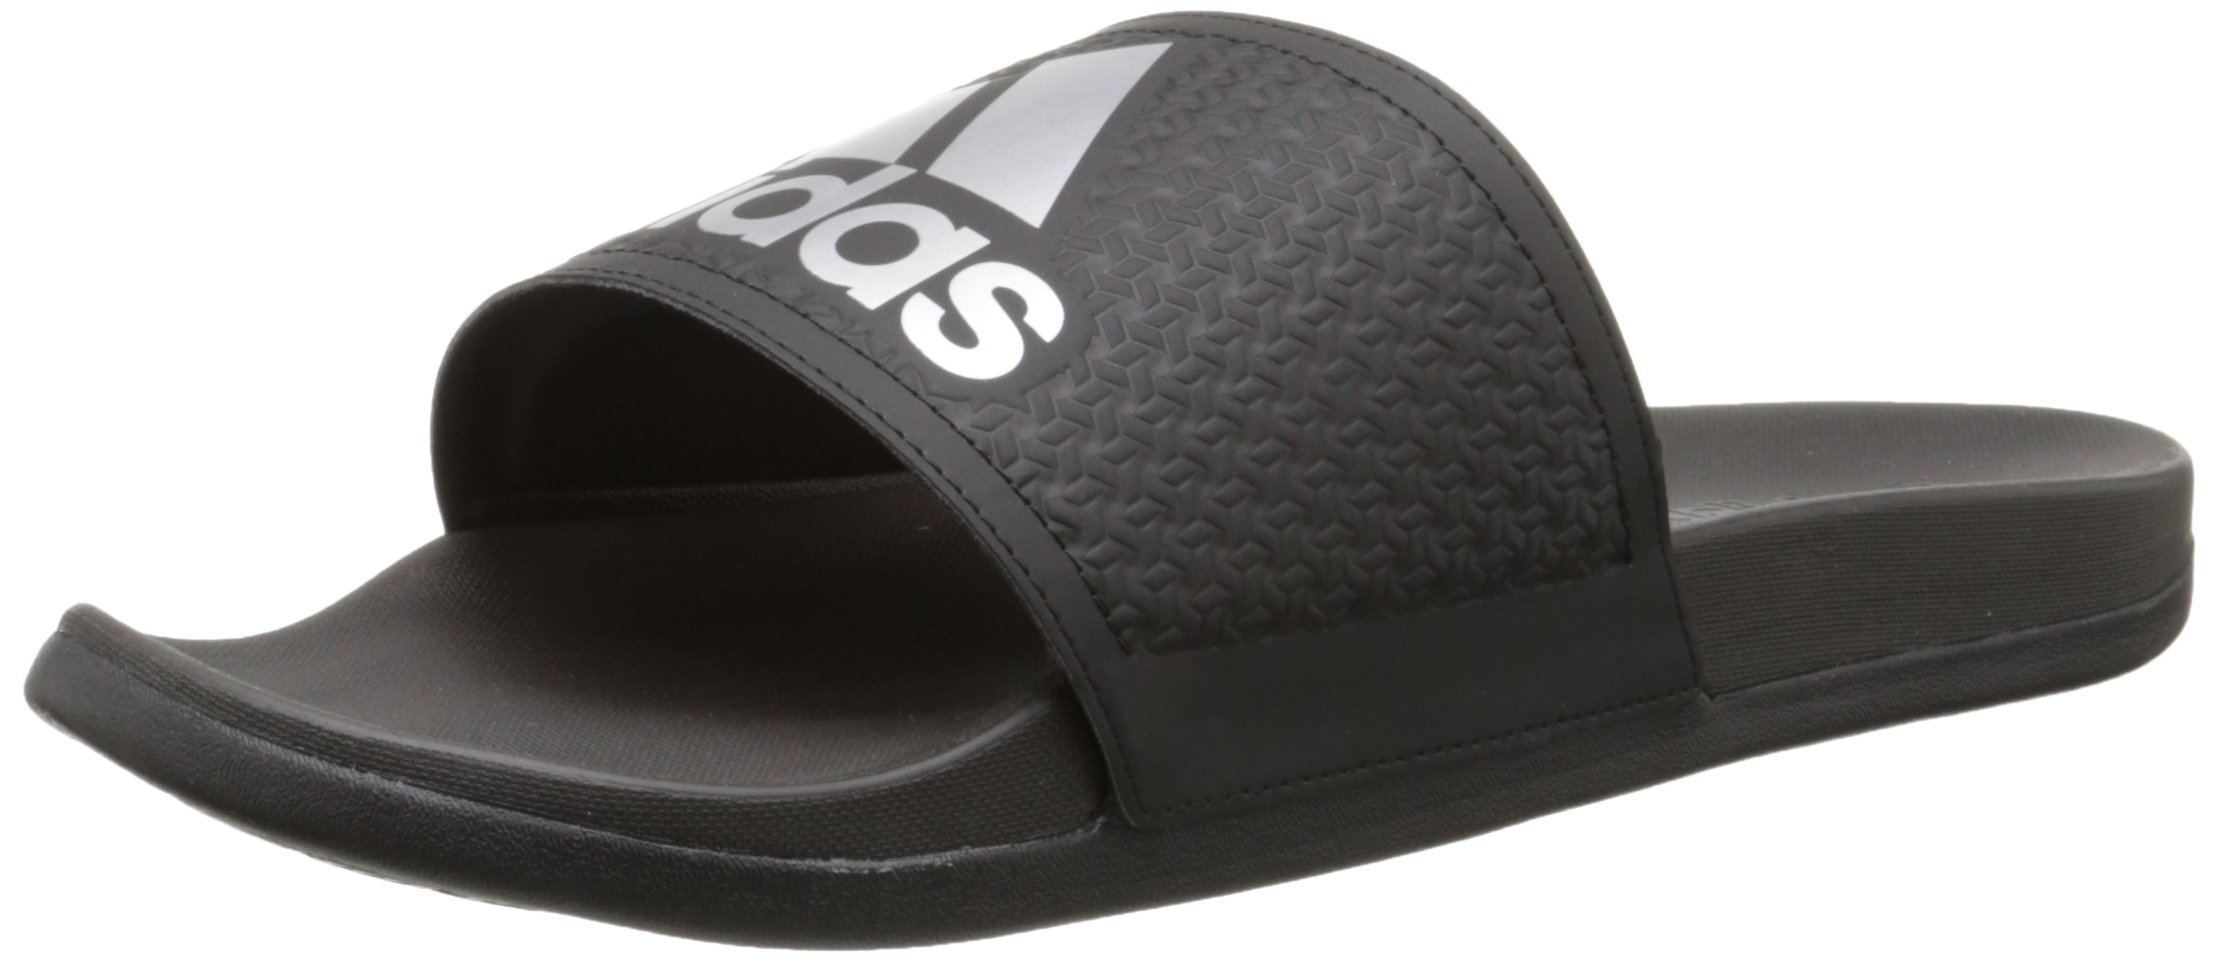 a1fd60745ebf47 Get Quotations · Adidas Performance Men s Adilette Cf Ultra C Athletic  Sandal